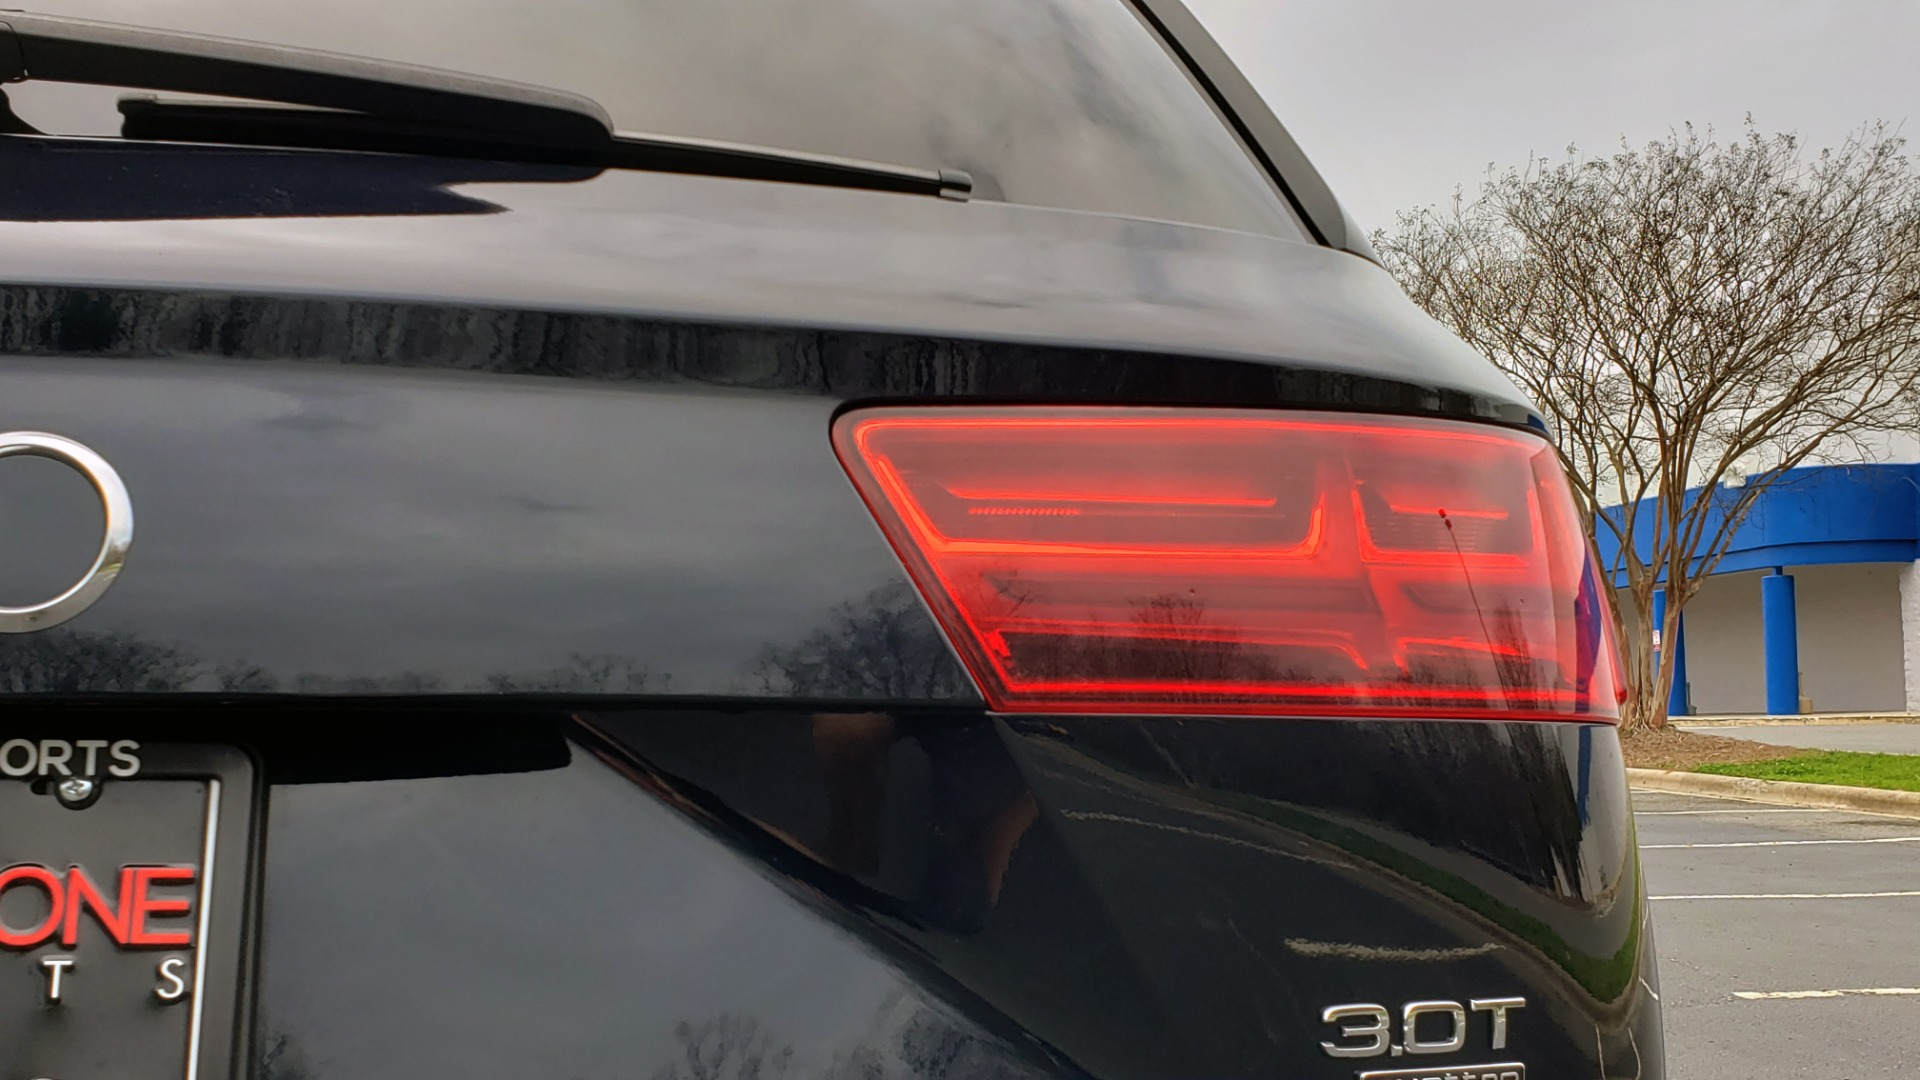 Used 2017 Audi Q7 PRESTIGE 3.0T / AWD / NAV / PANO-ROOF / HTD STS / BOSE / VISION for sale Sold at Formula Imports in Charlotte NC 28227 28